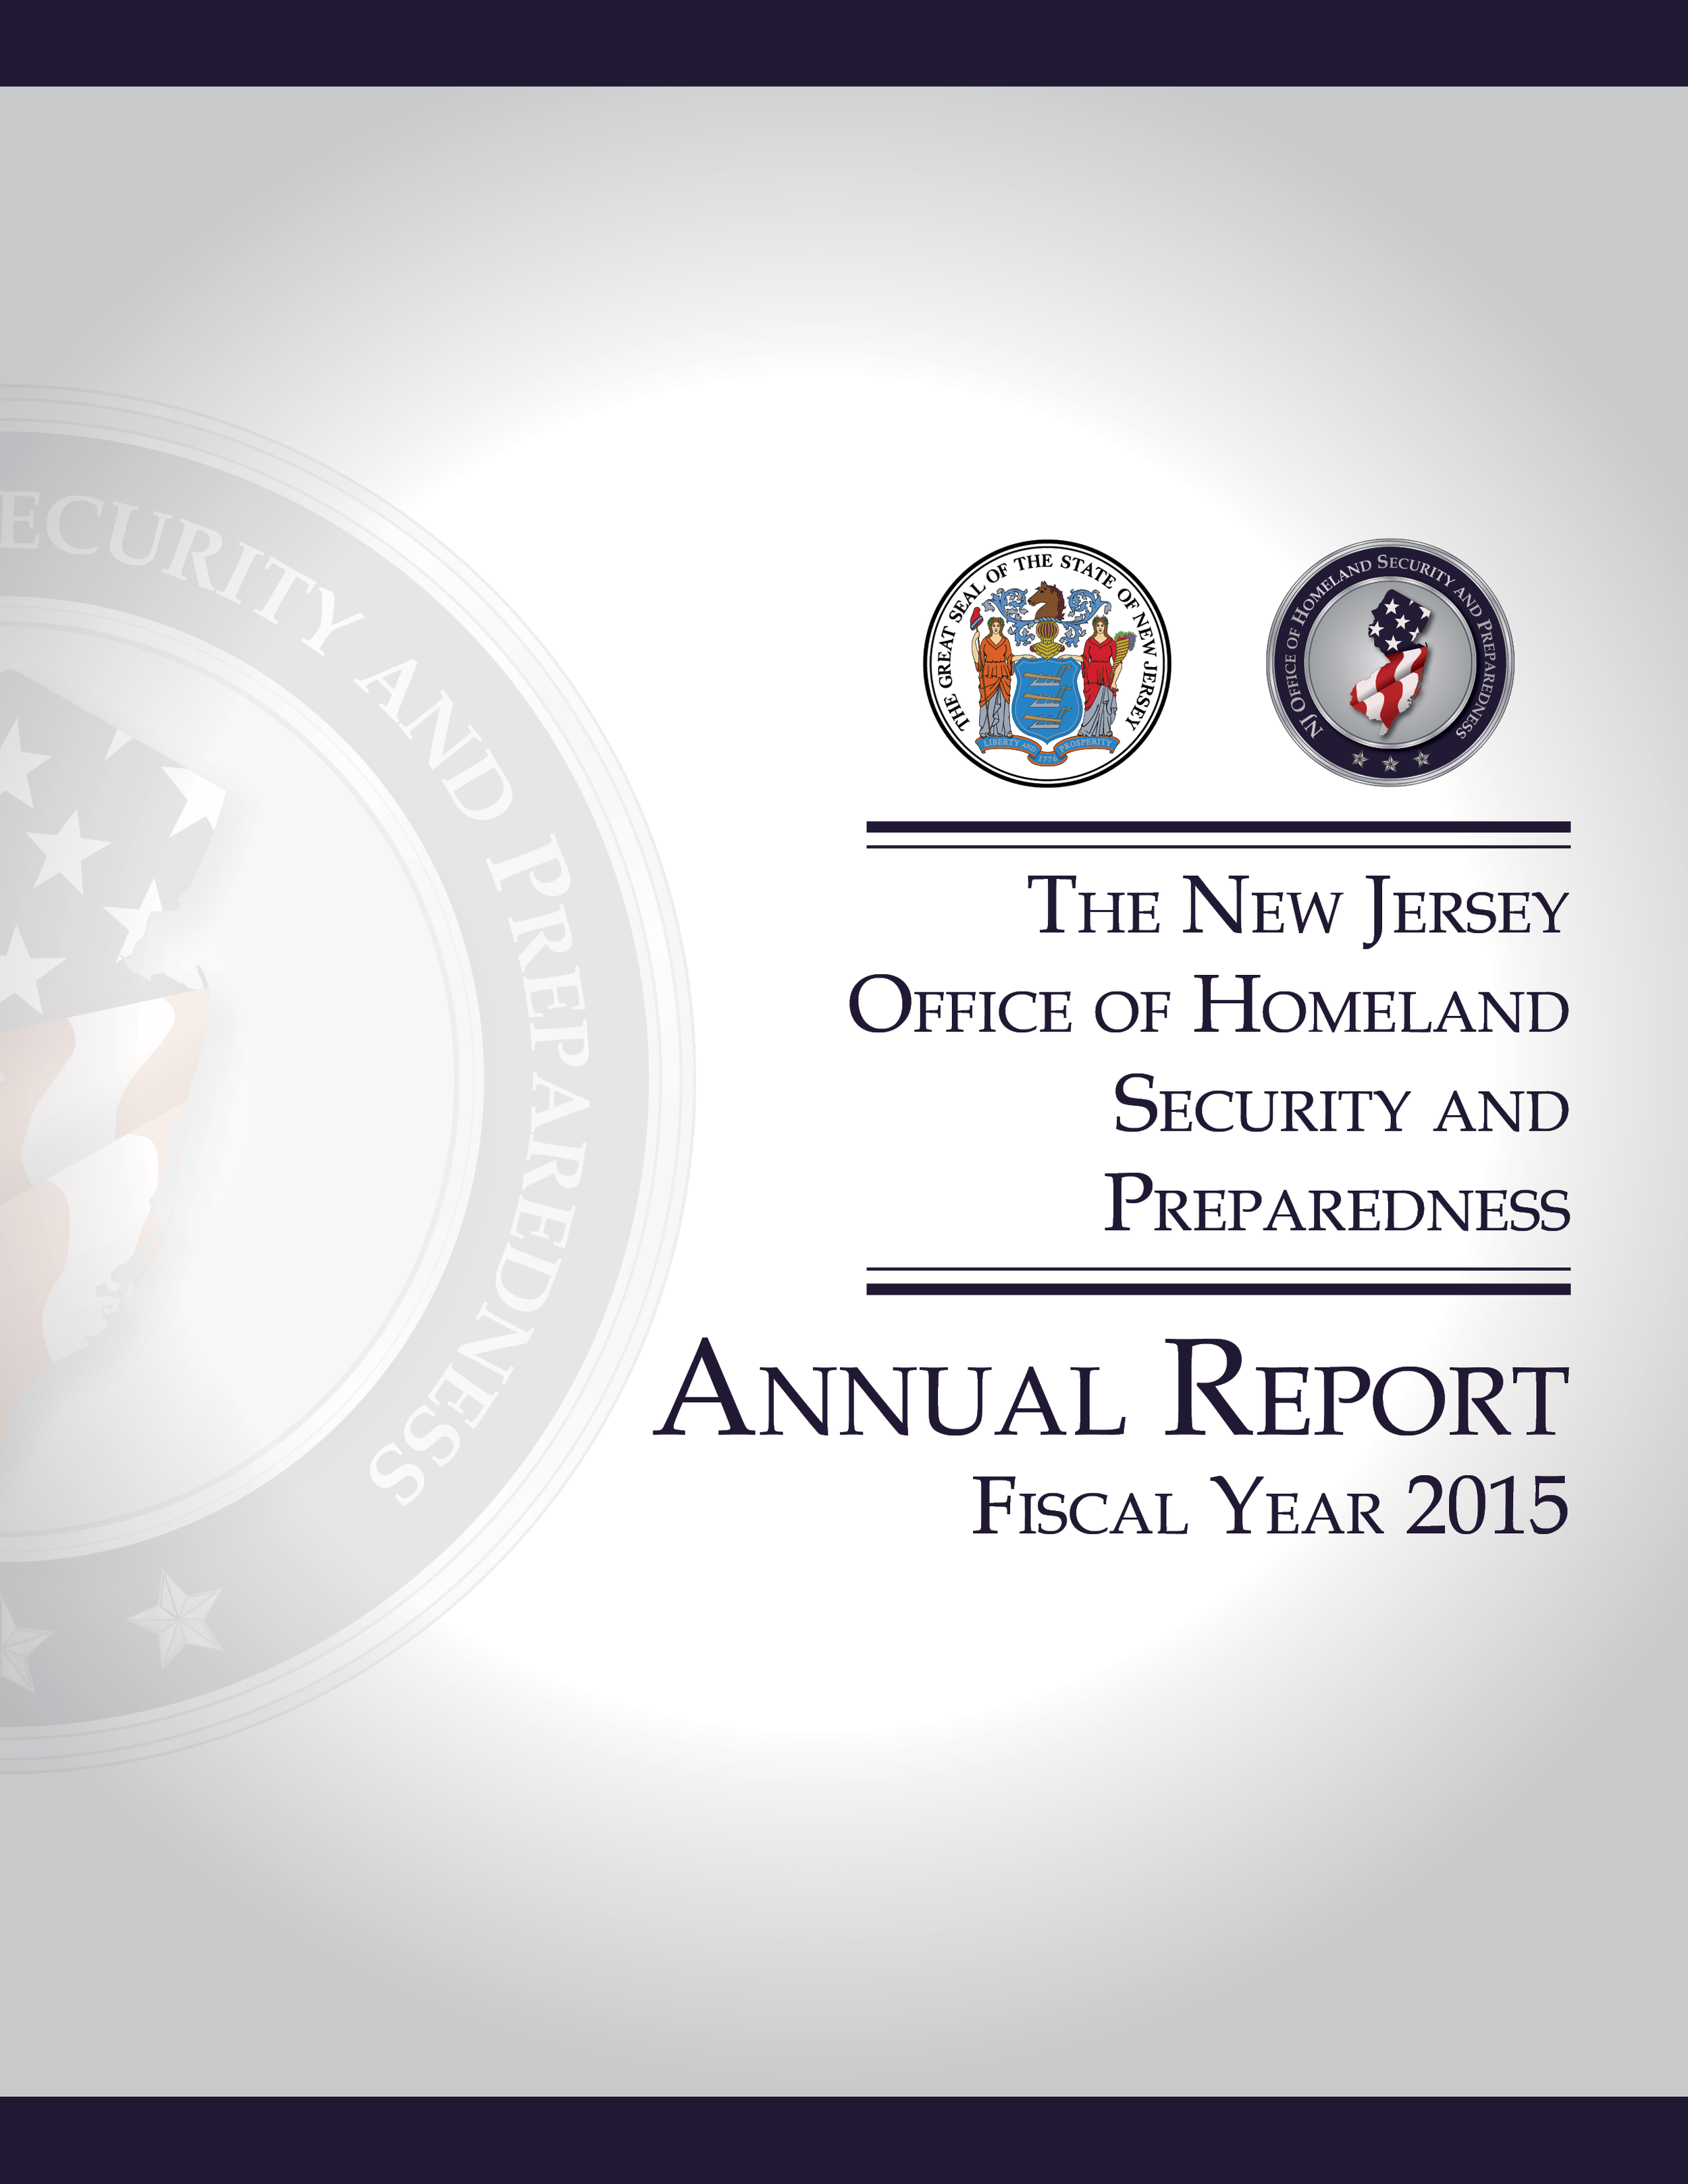 NJOHSP Annual Report Fiscal Year 2015 Cover.png